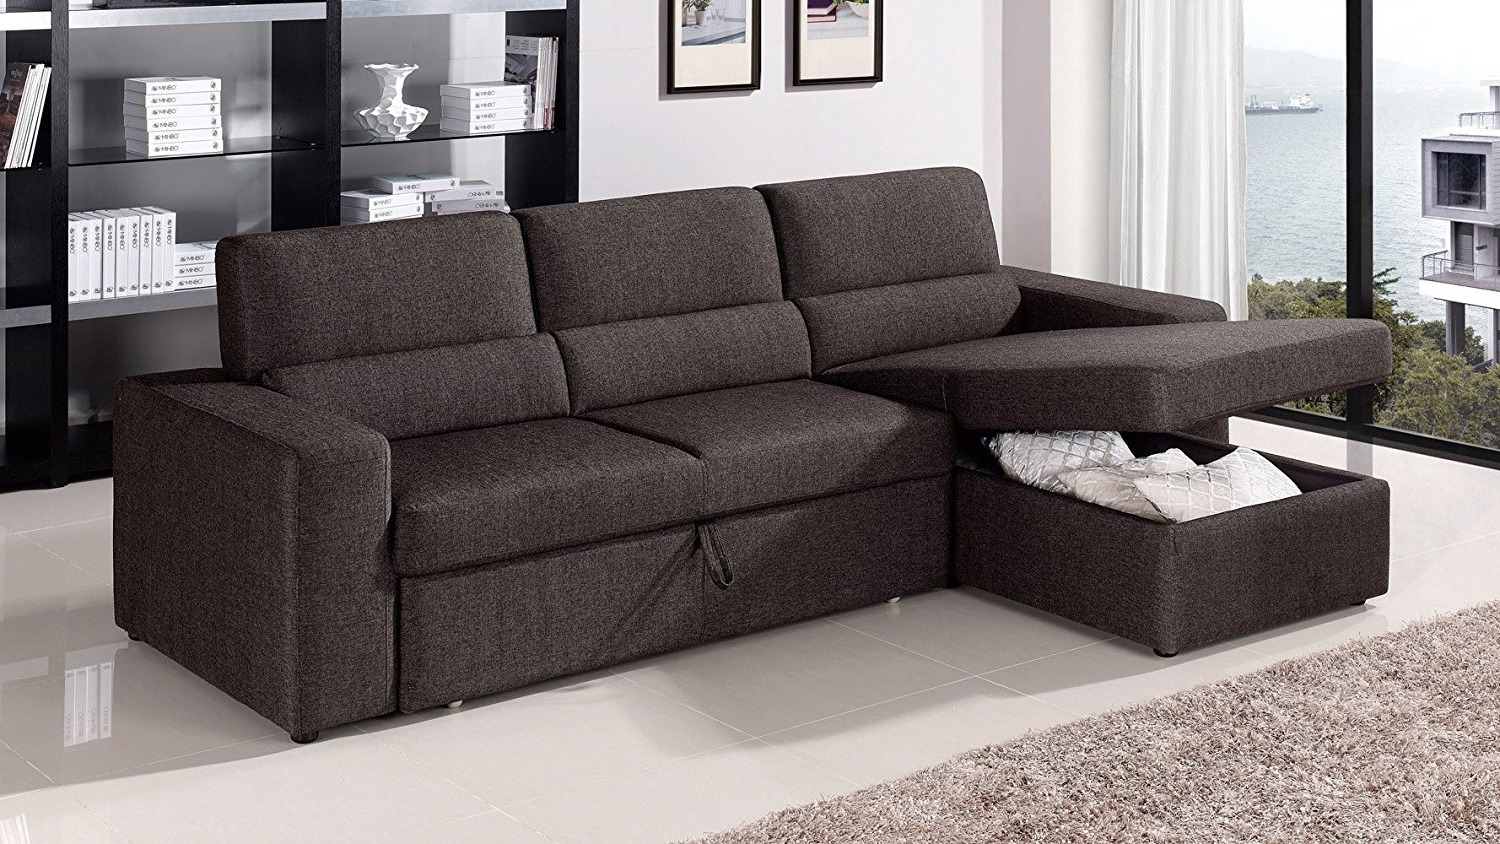 Newest Sleeper Chaises In Amazon: Black/brown Clubber Sleeper Sectional Sofa – Left (View 10 of 15)